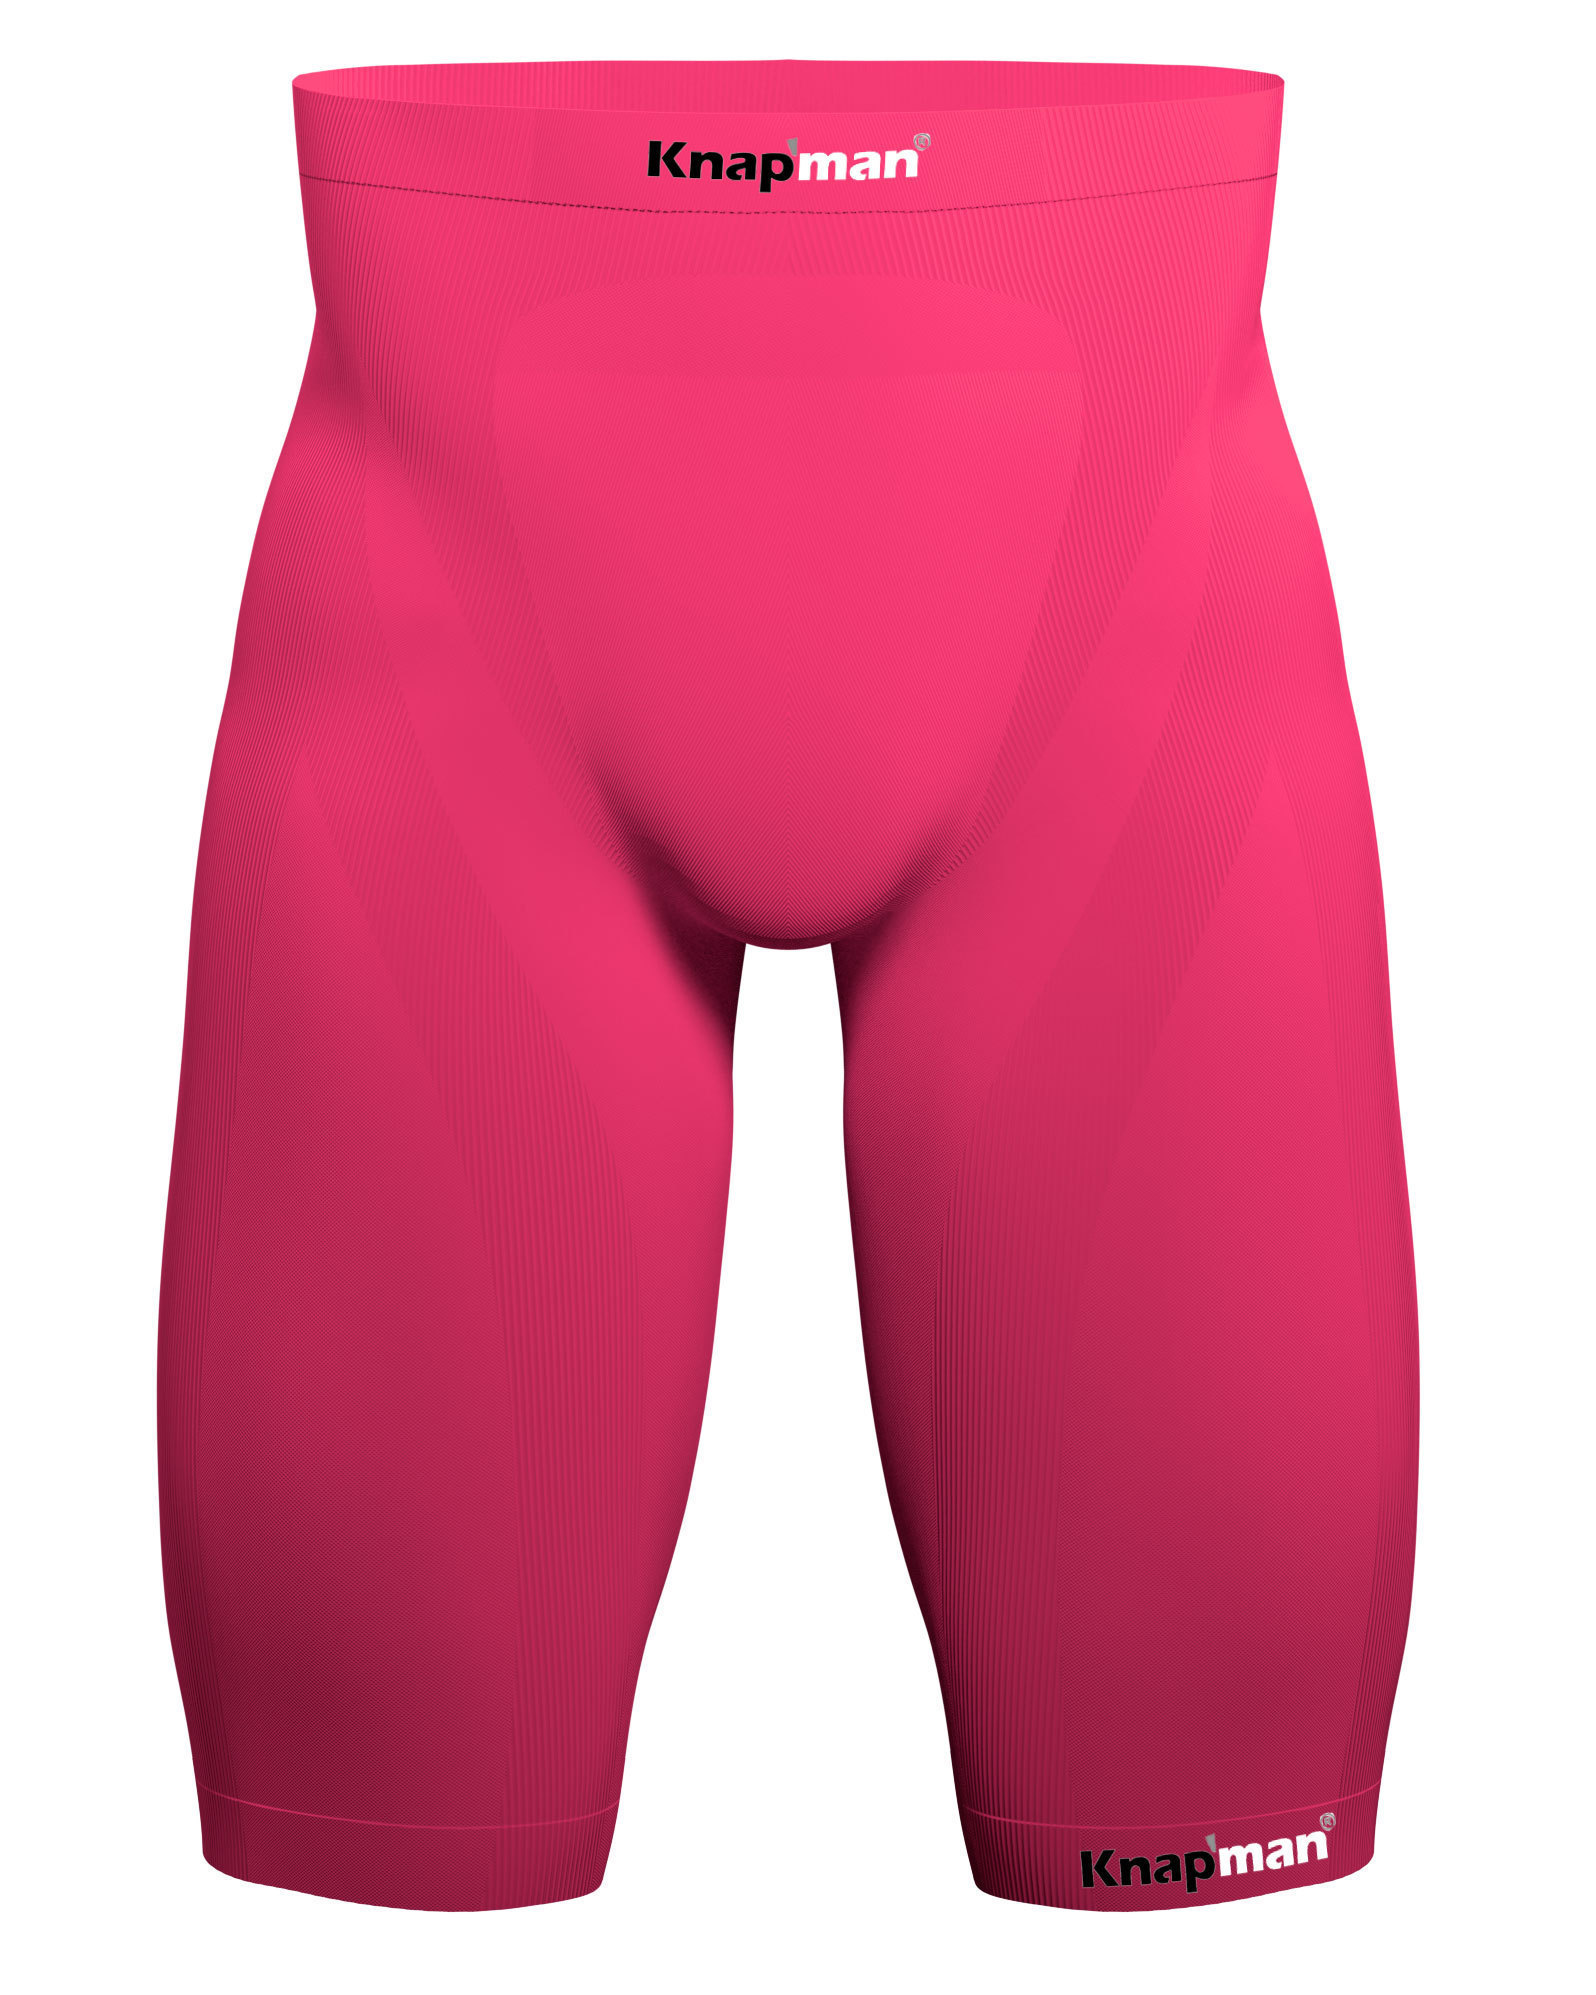 Knap'man Zoned Compression Short USP 45% roze